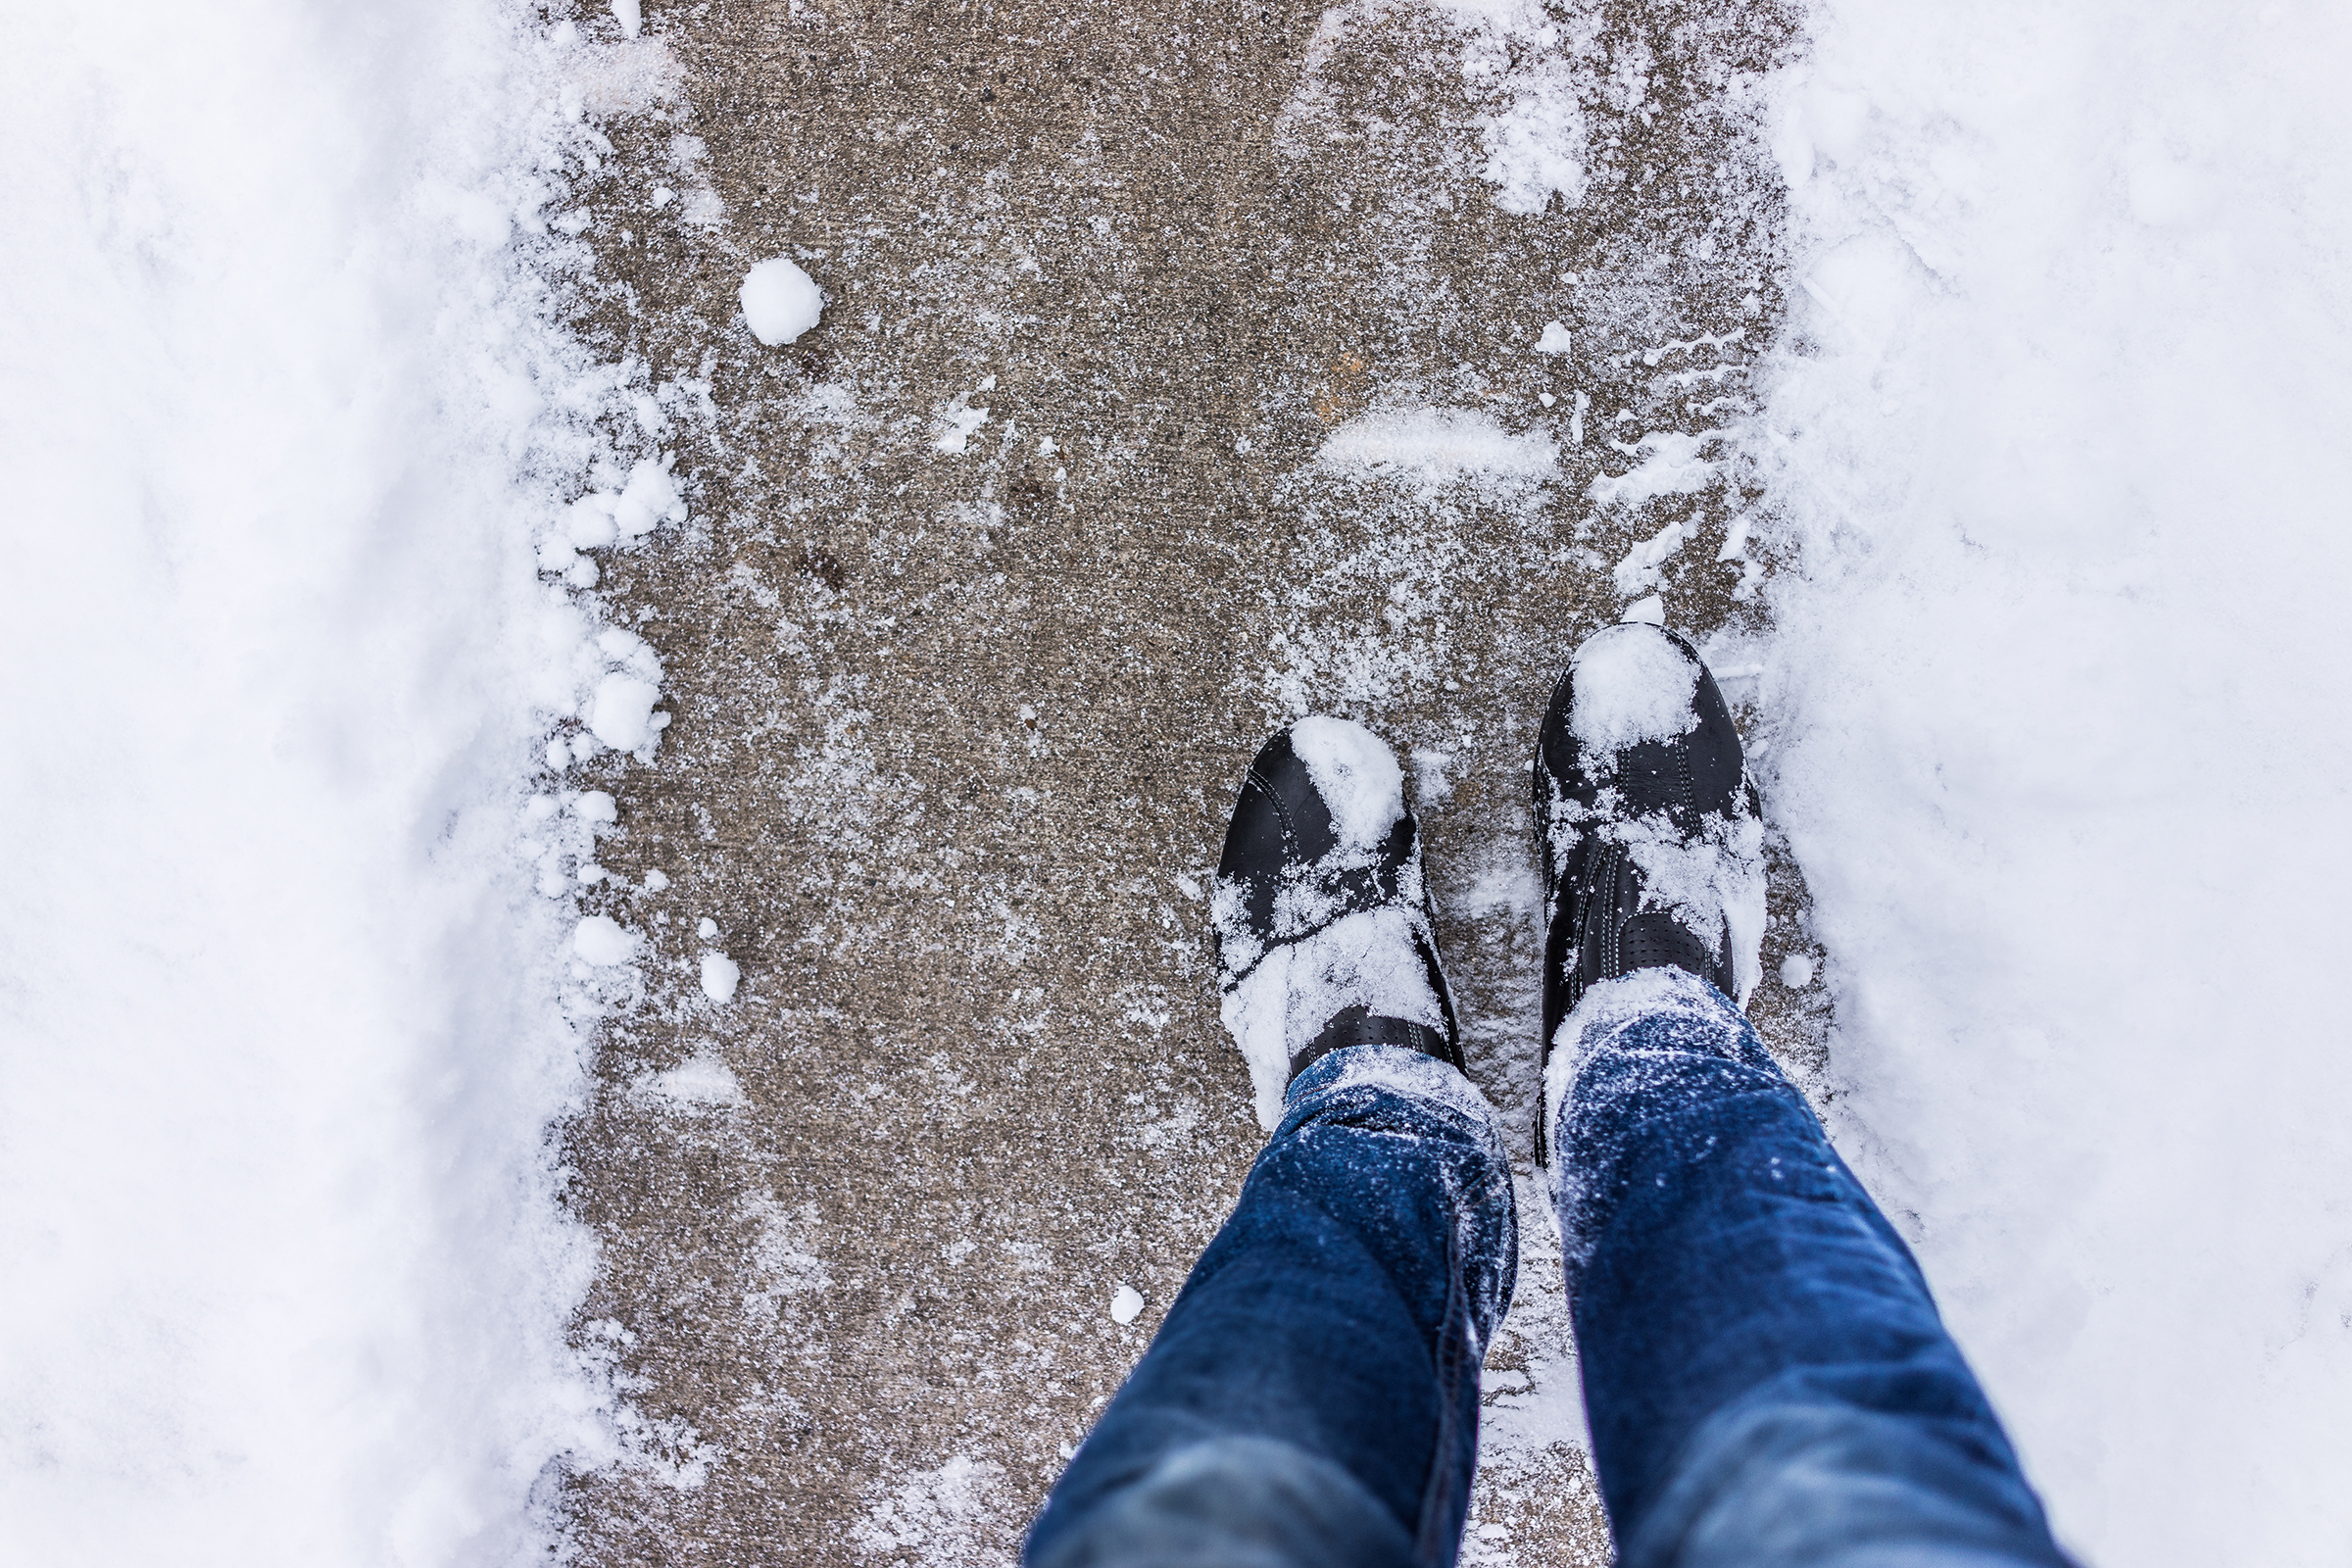 Looking down on a cleared path on snowy walkway with person in black boots